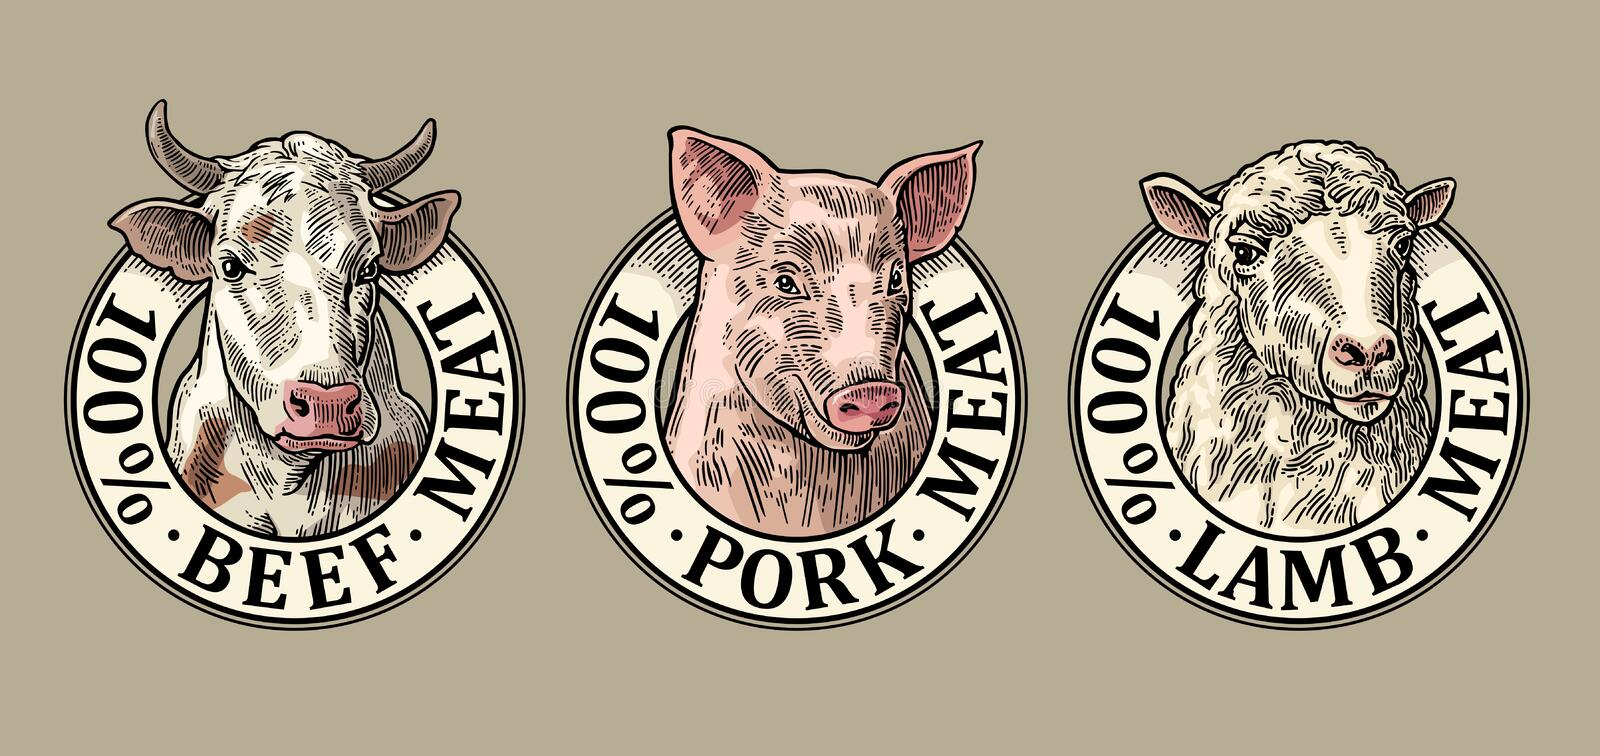 Cows, pig, sheep head. 100 percent beef pork lamb meat lettering. Vintage engraving. Cows, pig, sheep head. 100 percent beef pork lamb meat lettering. Hand drawn vector illustration